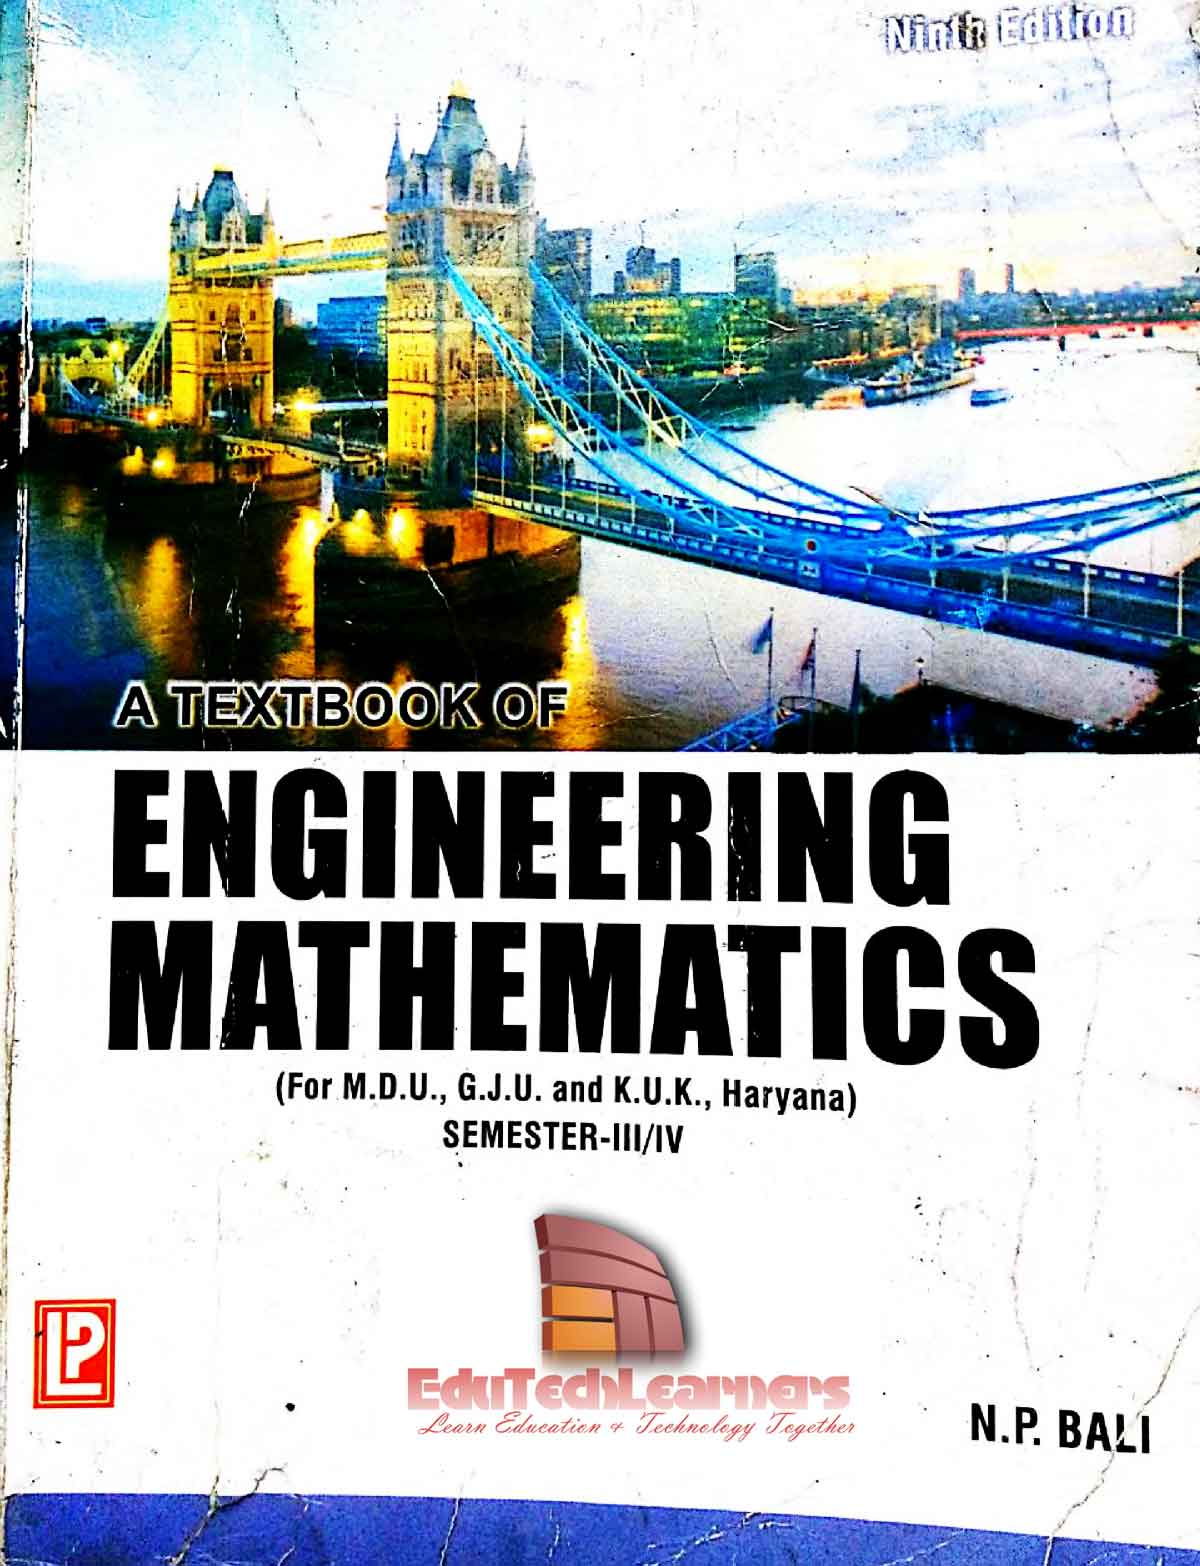 A Textbook of Engineering Mathematics (Semester-III/IV) by